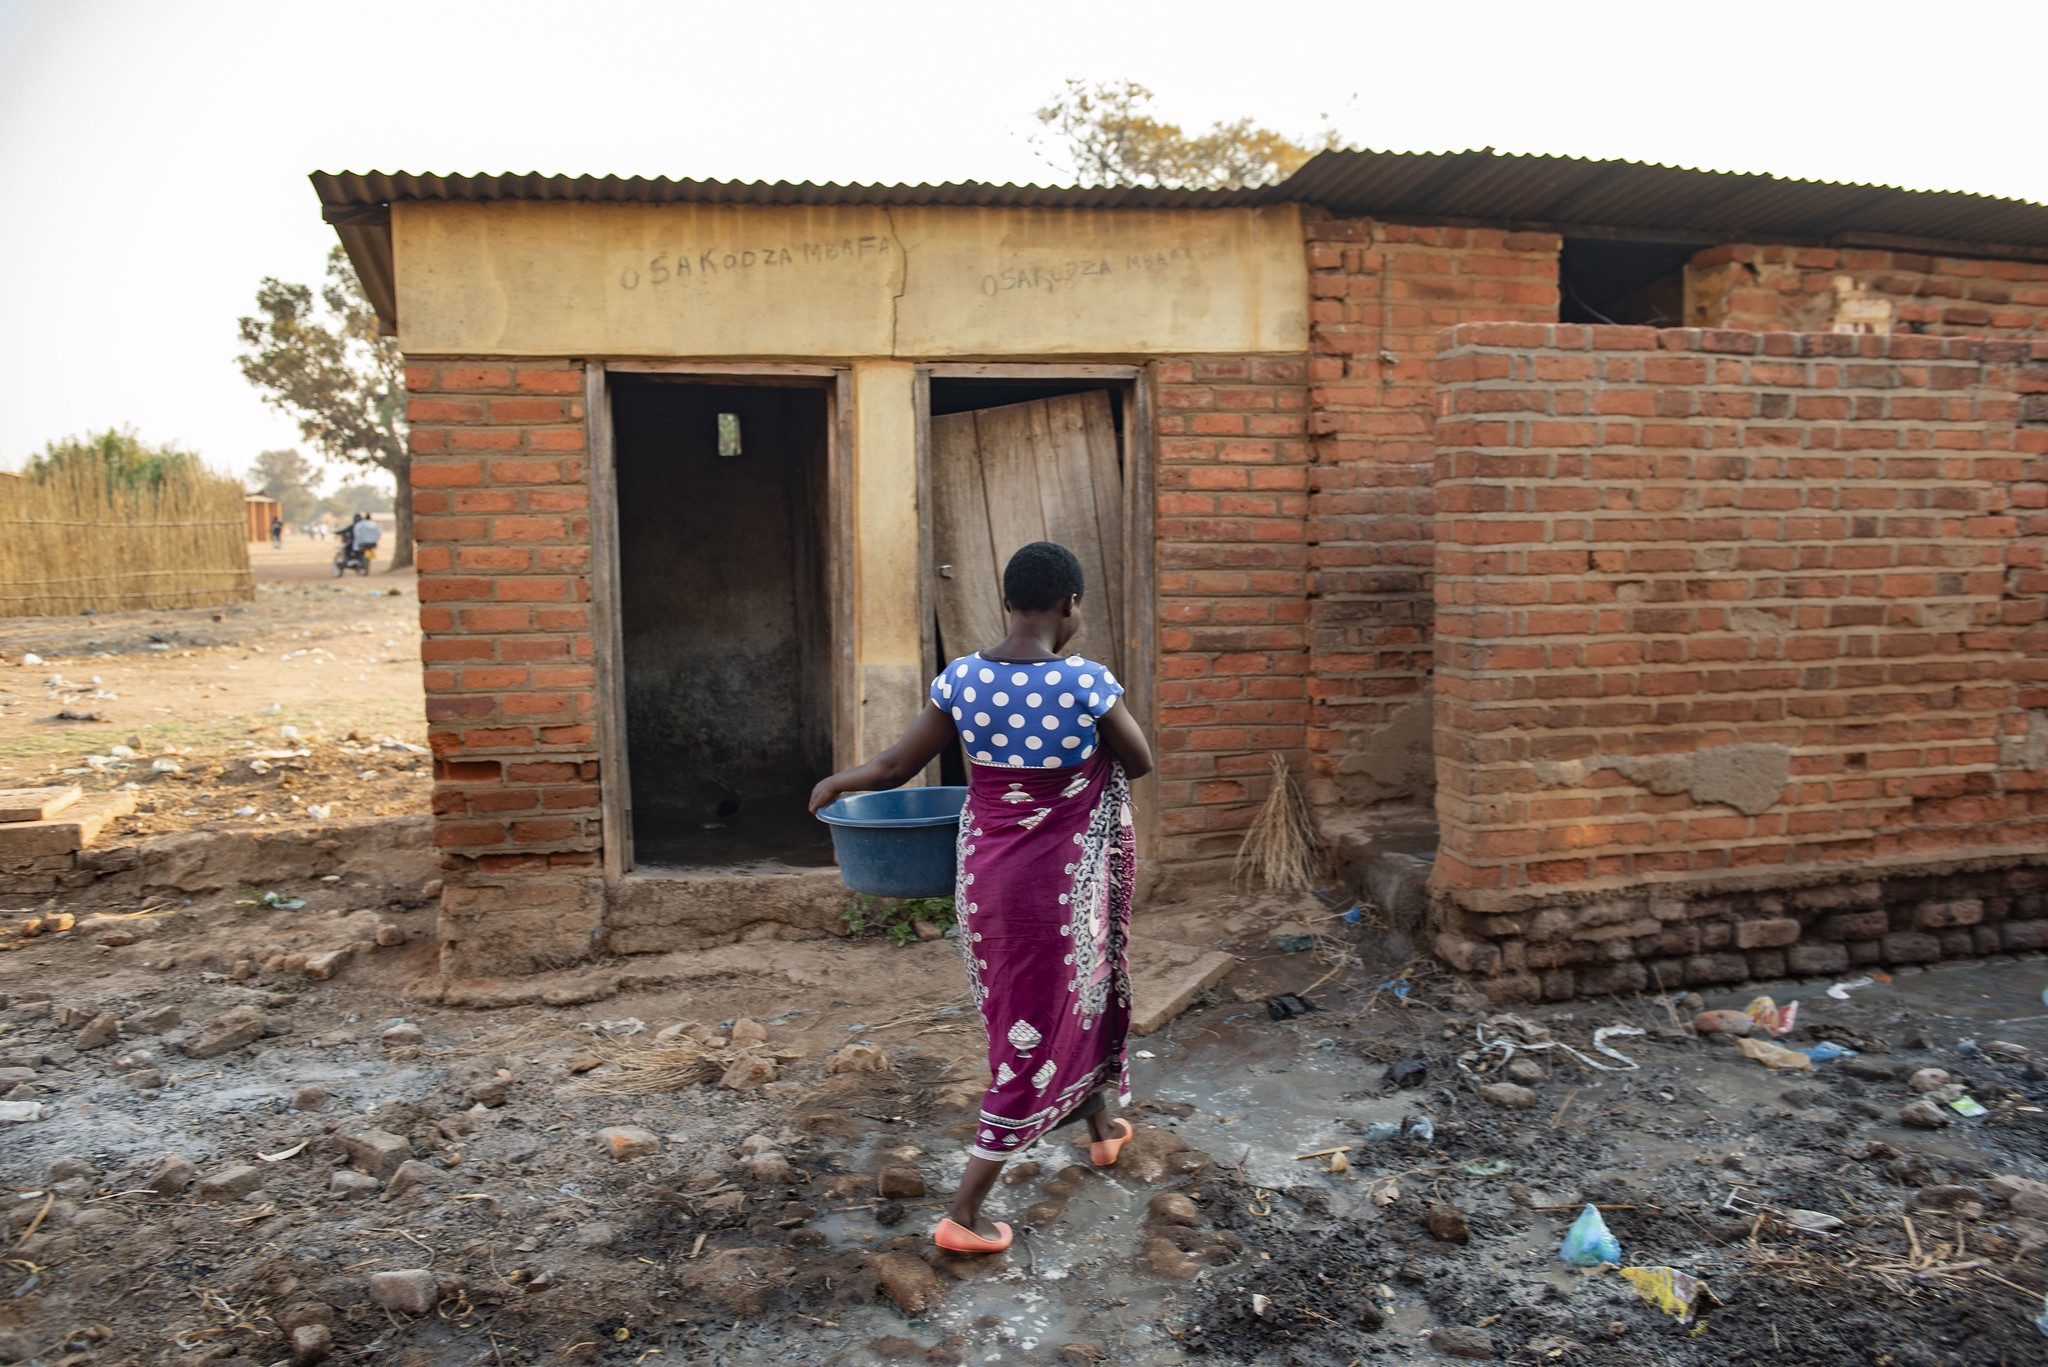 A Malawian woman makes her way through a cluttered pathway on her way to a inadequate toilet facility at a health center.